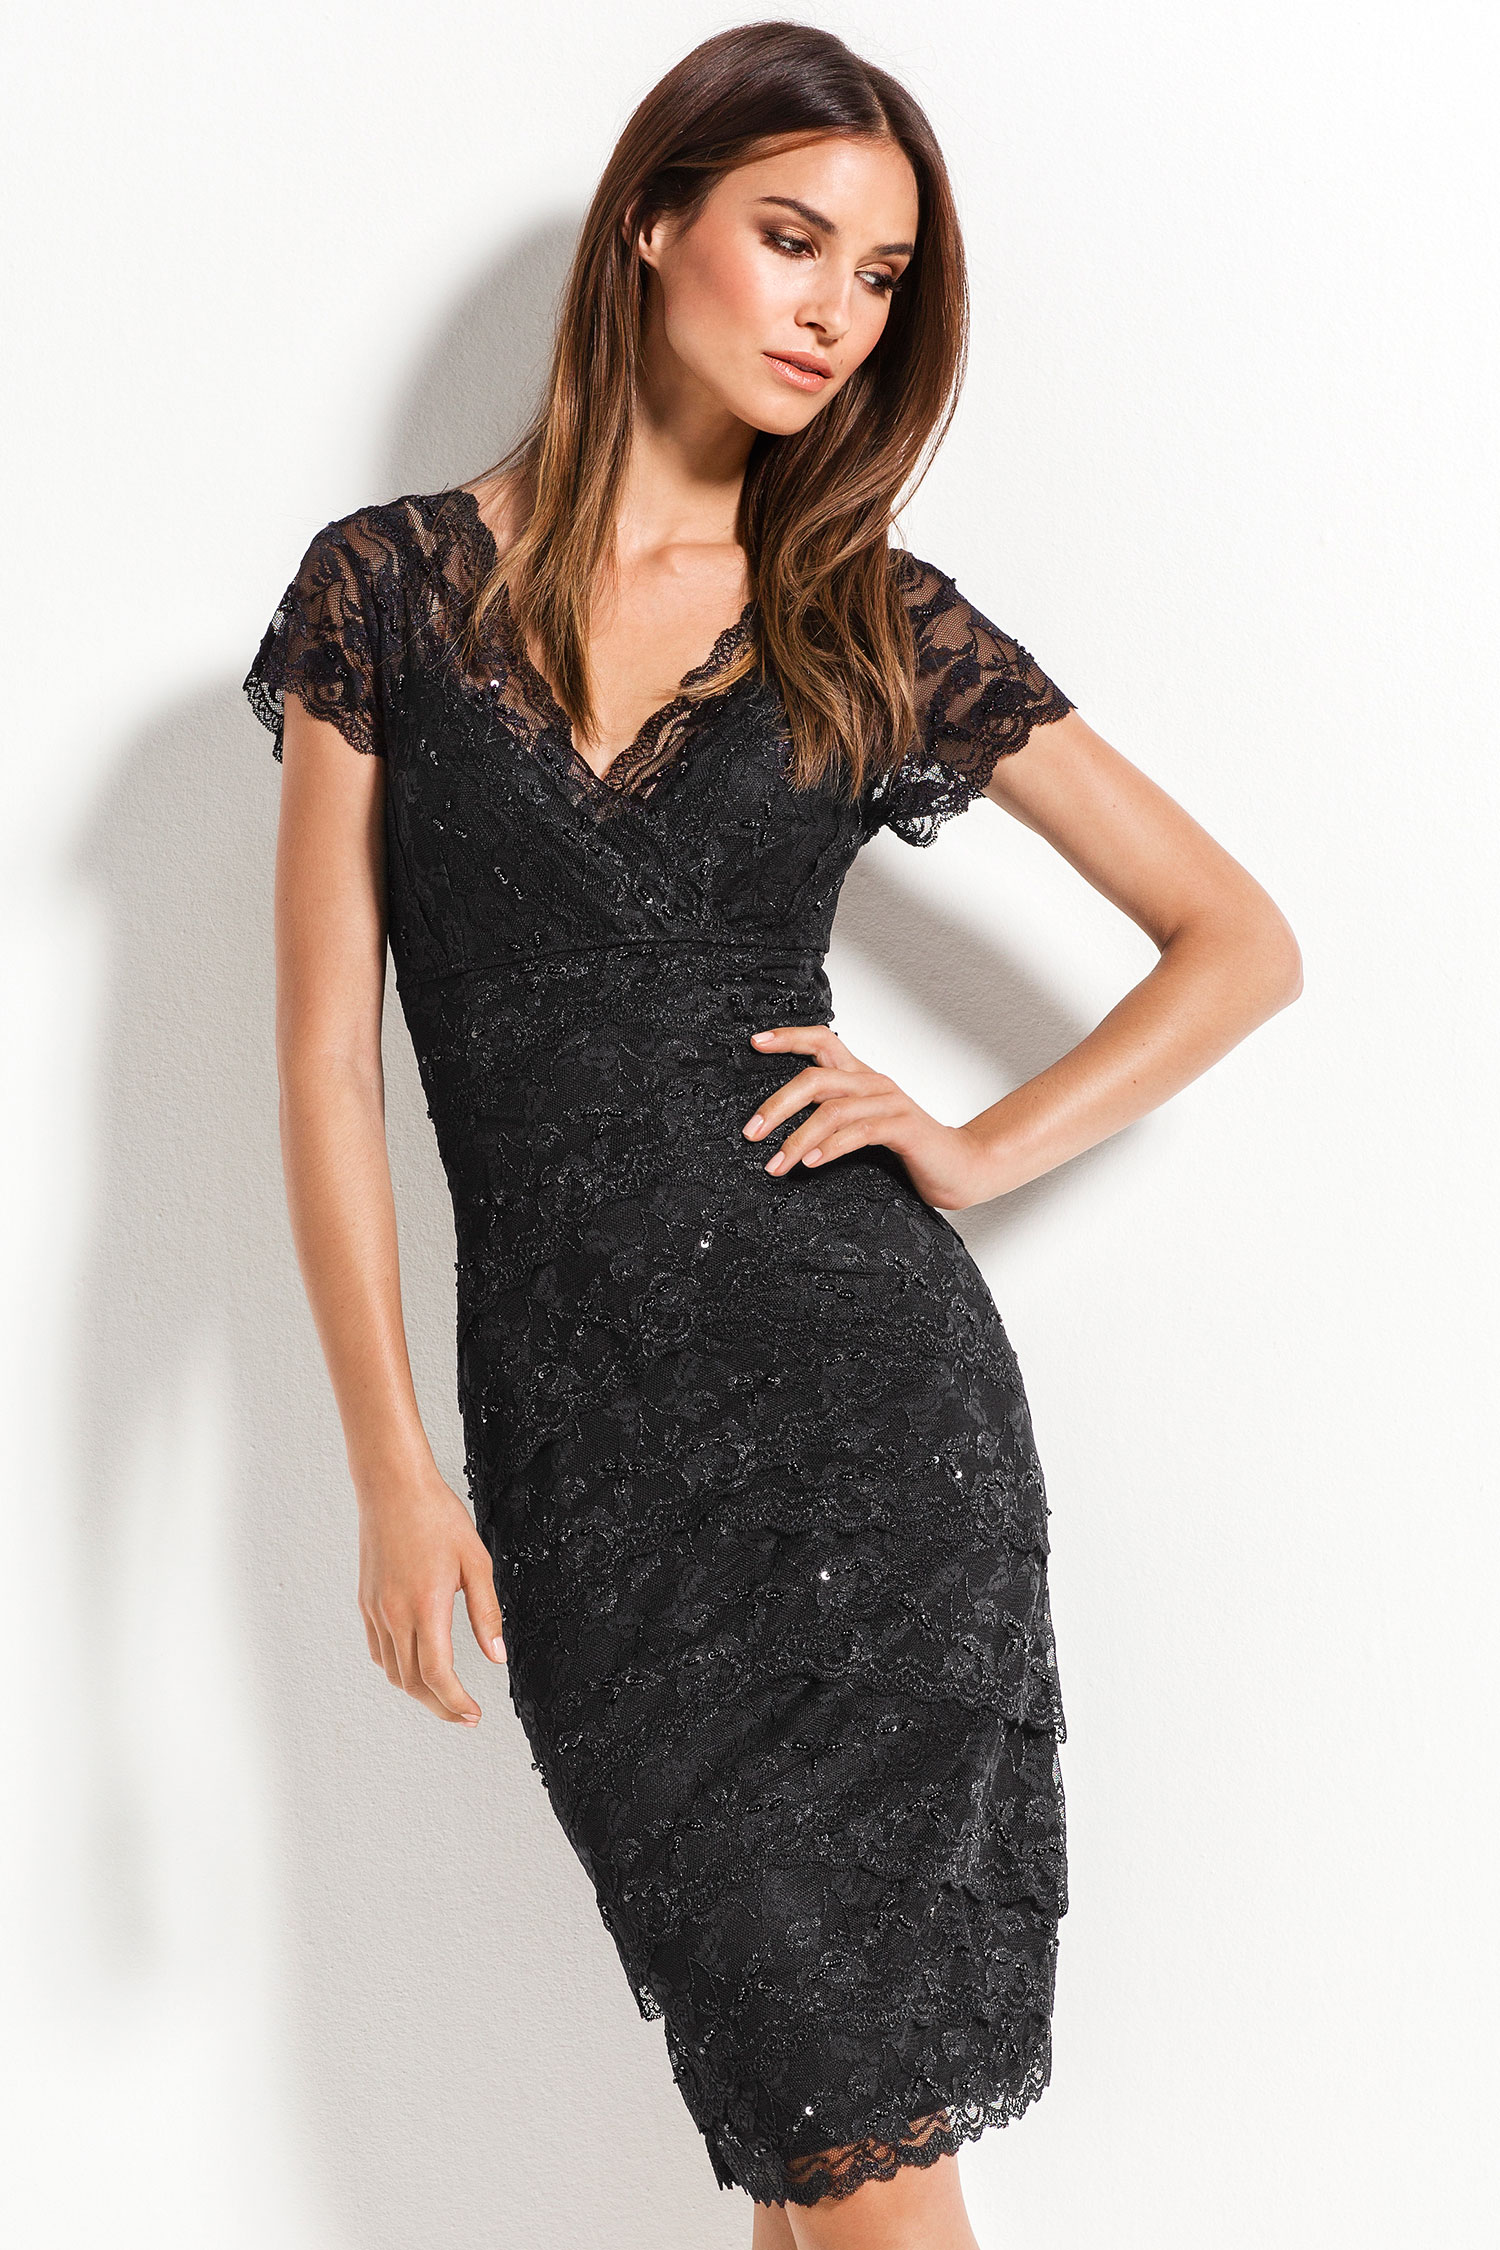 Make a good in impression in the Grace Hill Lace Layered Dress